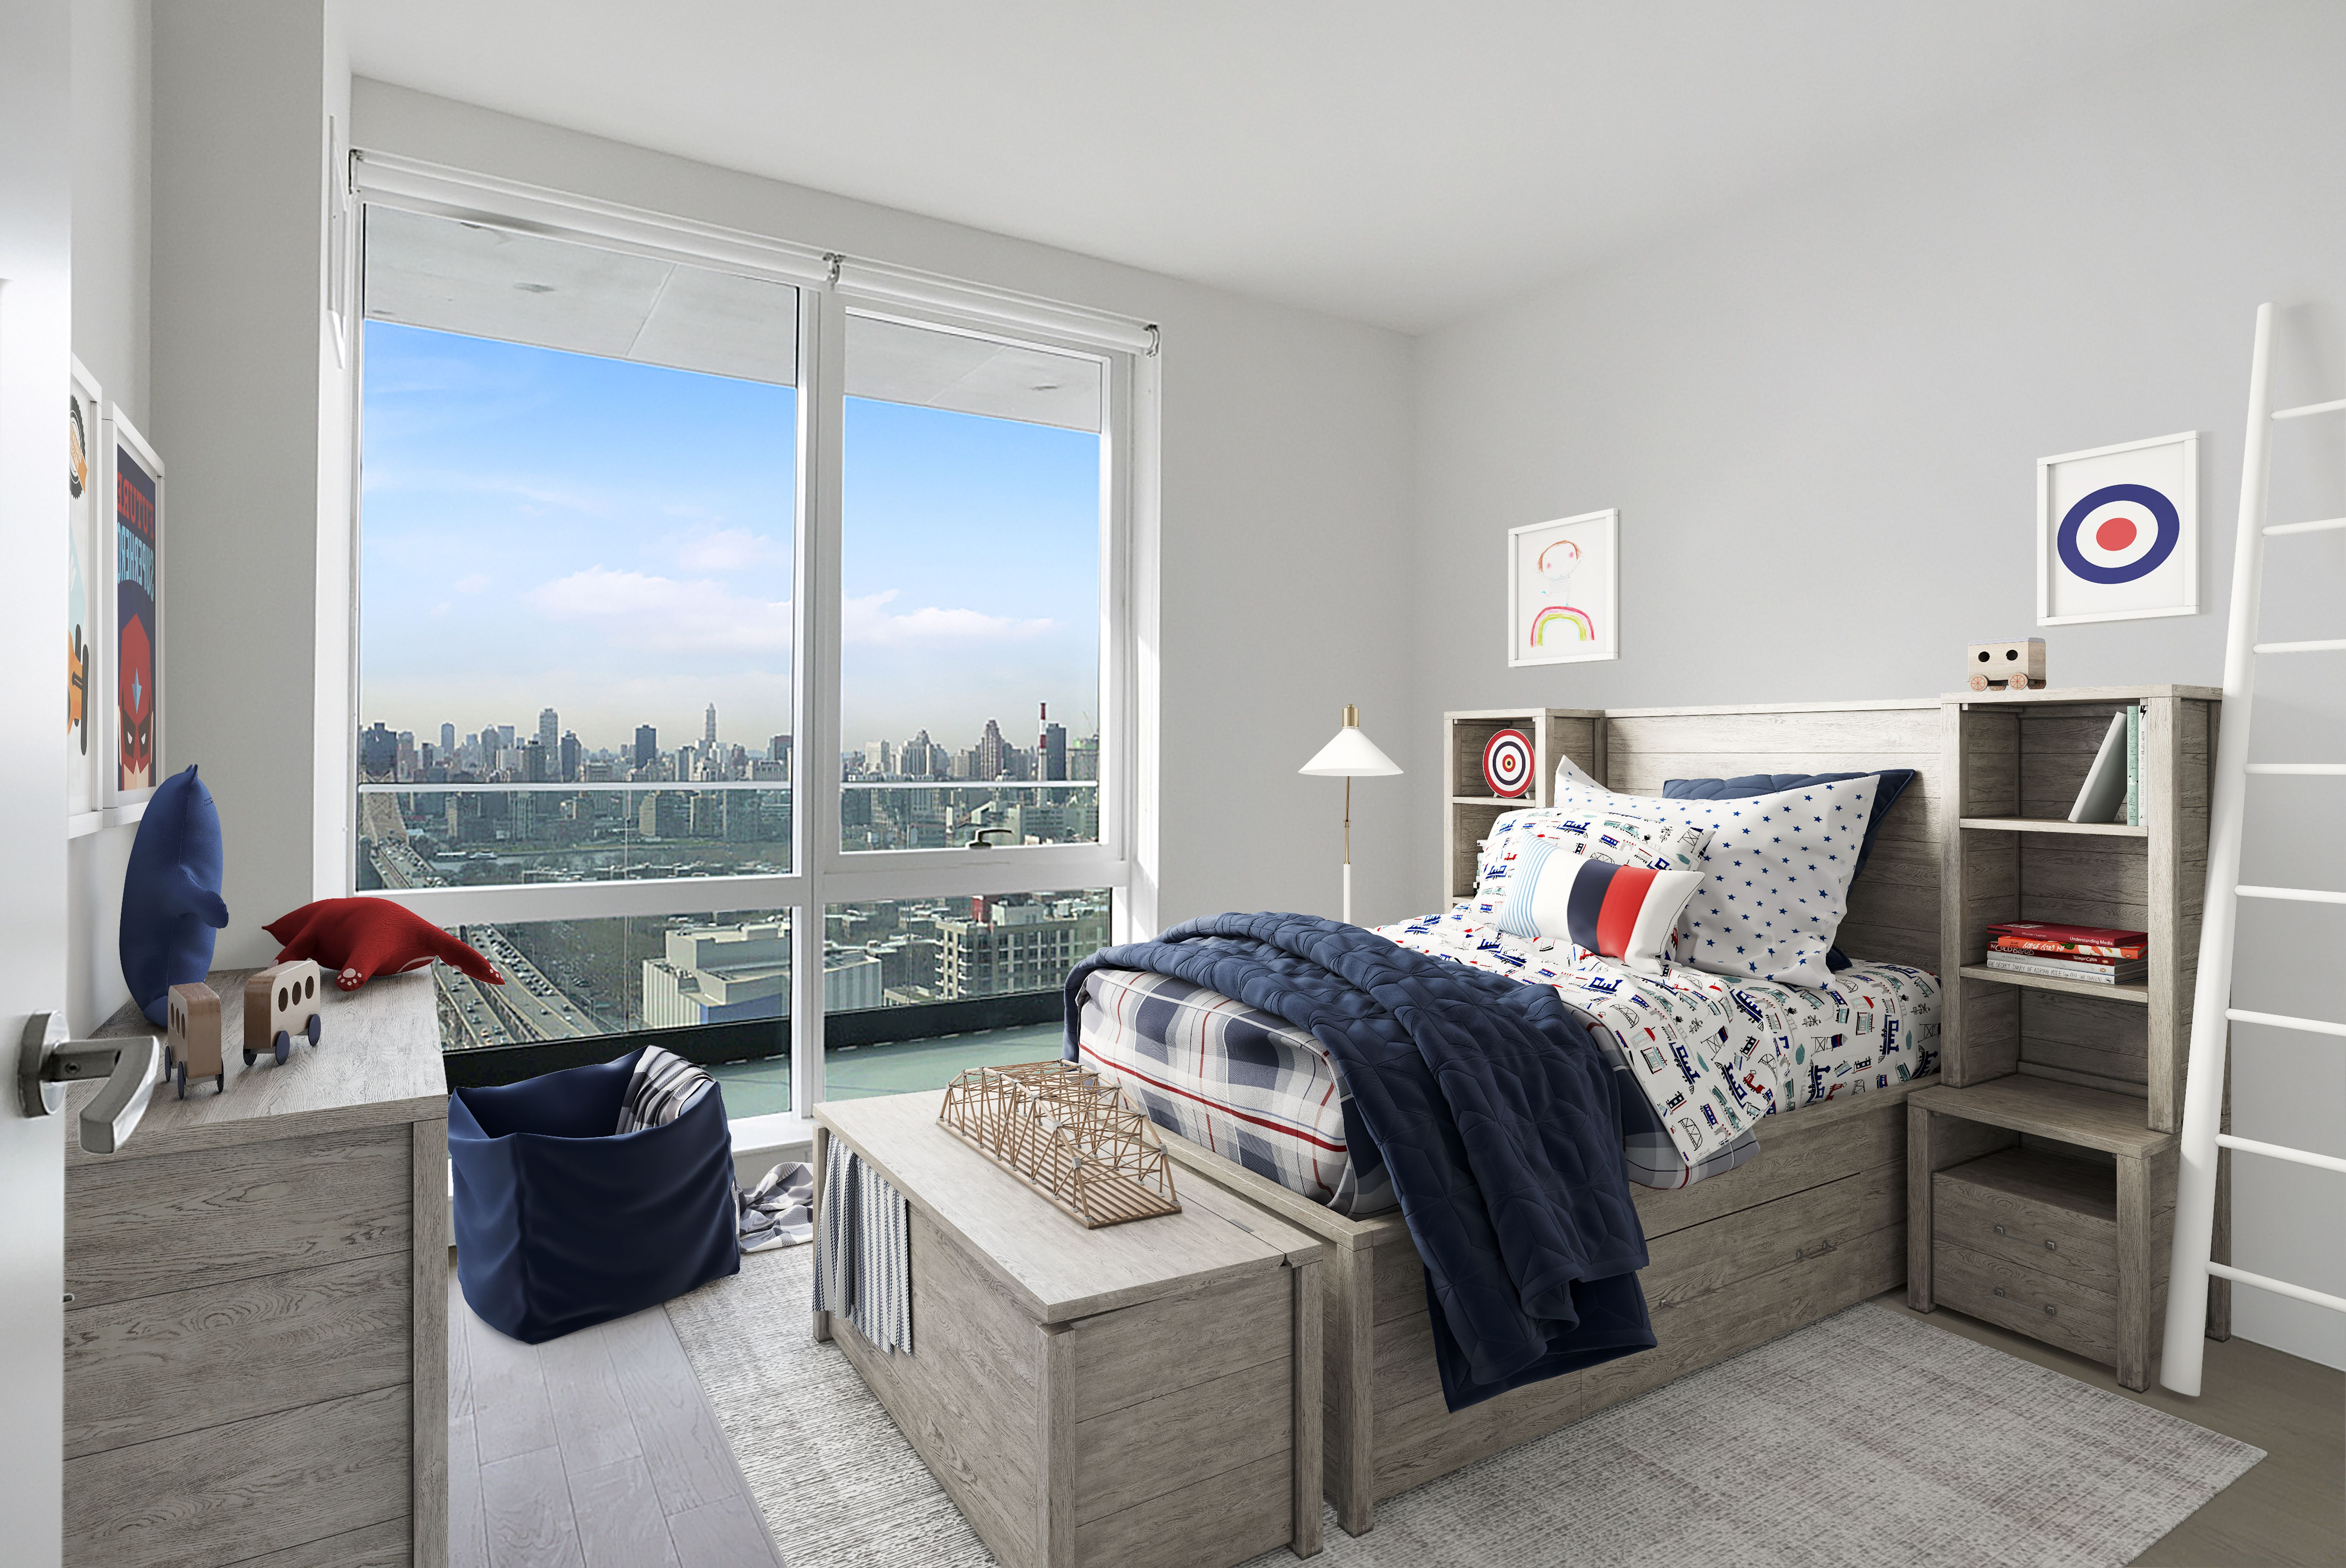 Looking for a functional apartment in LongIslandCity